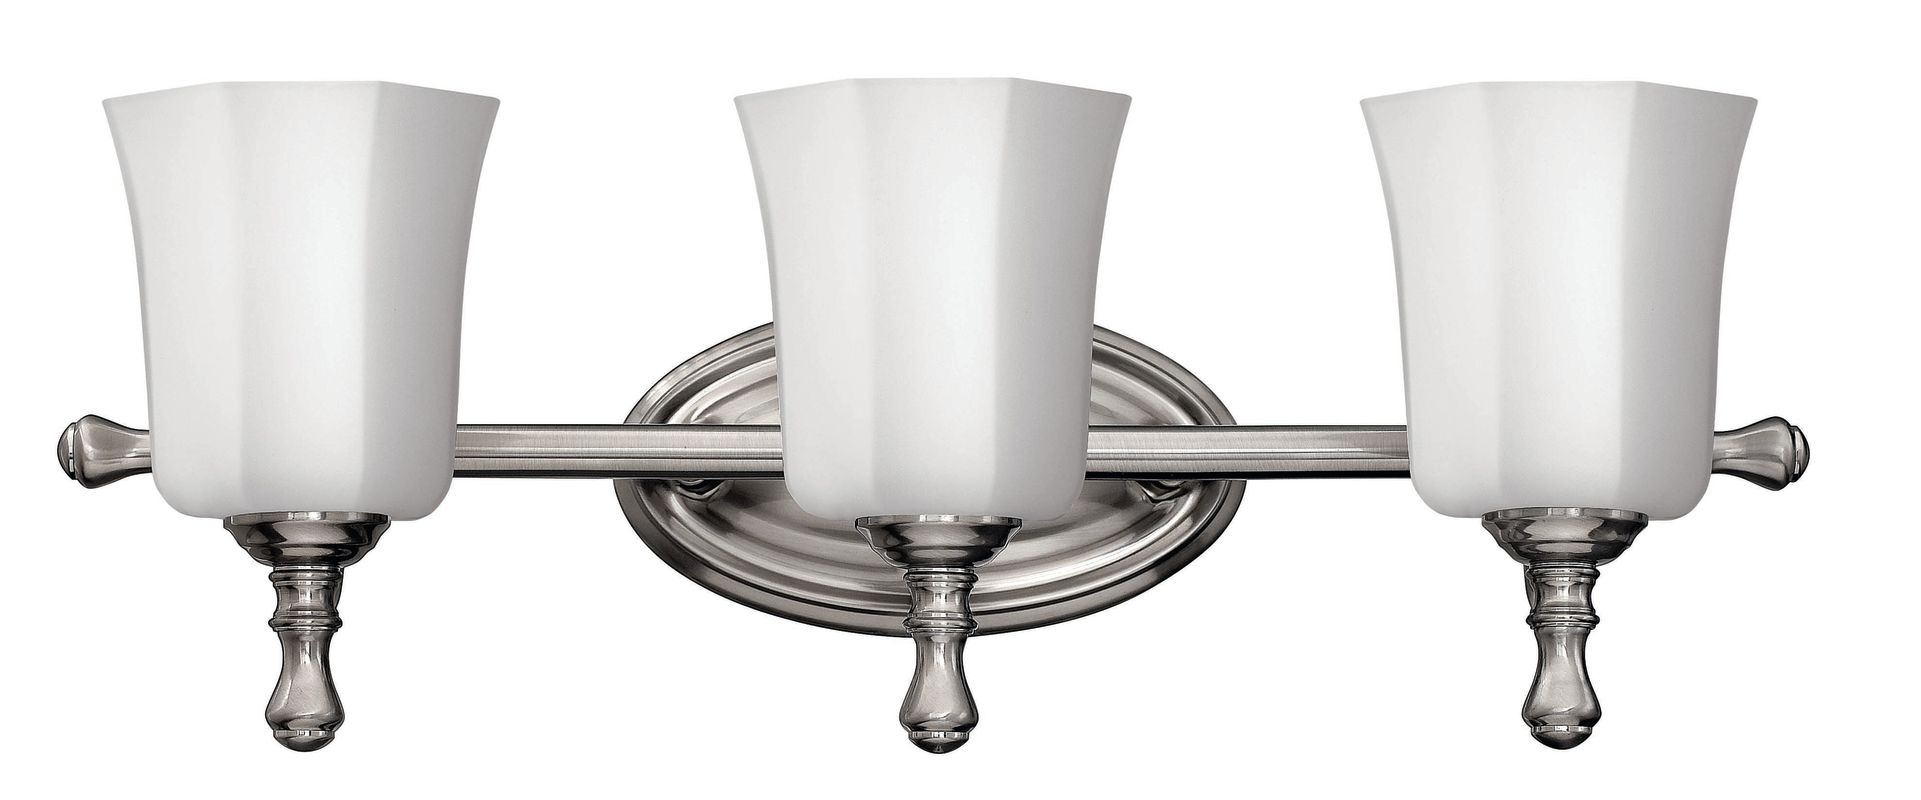 "Progress Lighting Lucky Collection 4 Light Brushed Nickel: Hinkley Lighting 5013BN Brushed Nickel 3 Light 24"" Width"